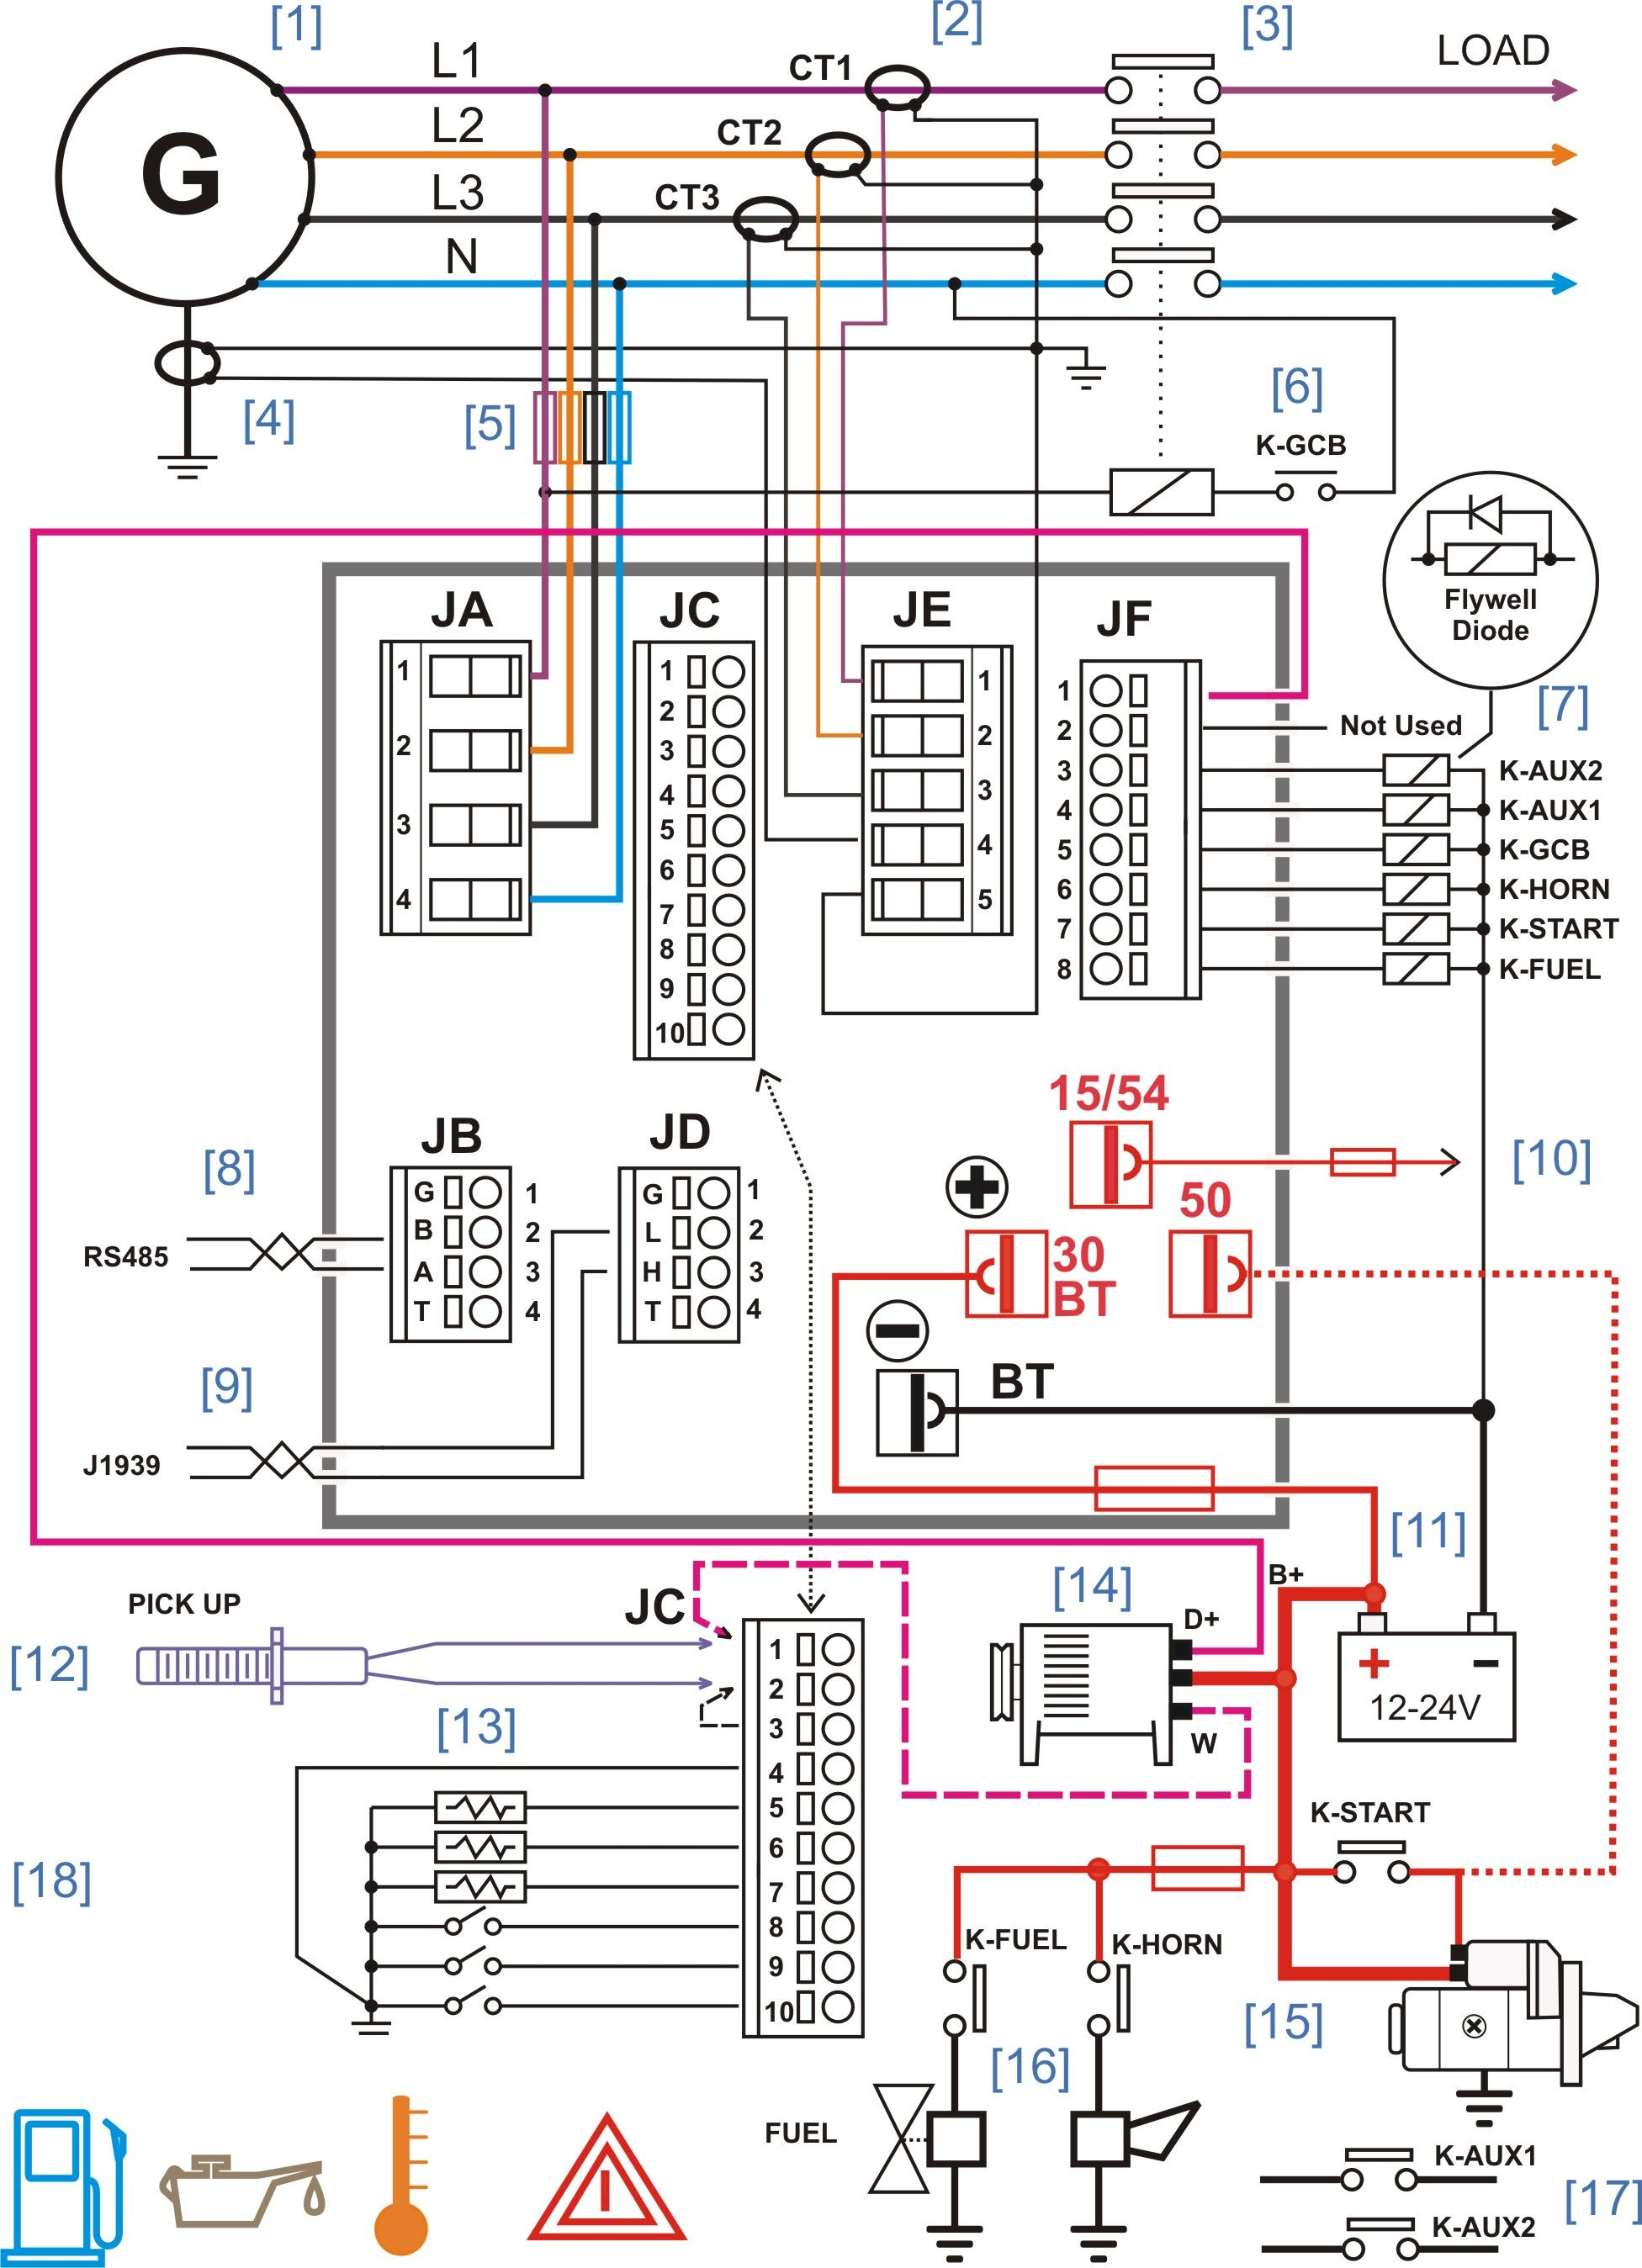 plc panel wiring diagram wiring diagram portal rh 15 18 3 kaminari music de plc wiringstfree wiring diagram for you